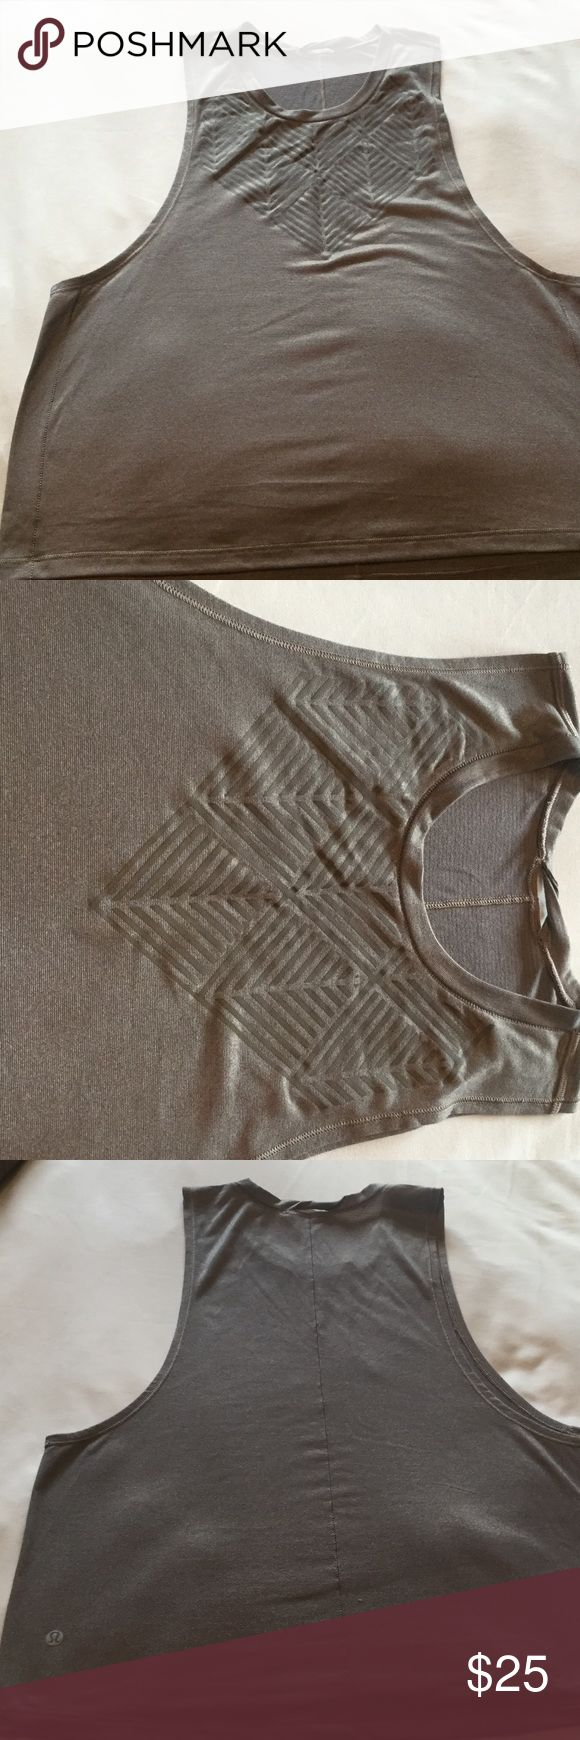 Lululemon muscle tee Gold tee with design on front. Tag is missing. It is a size 10. lululemon athletica Tops Muscle Tees